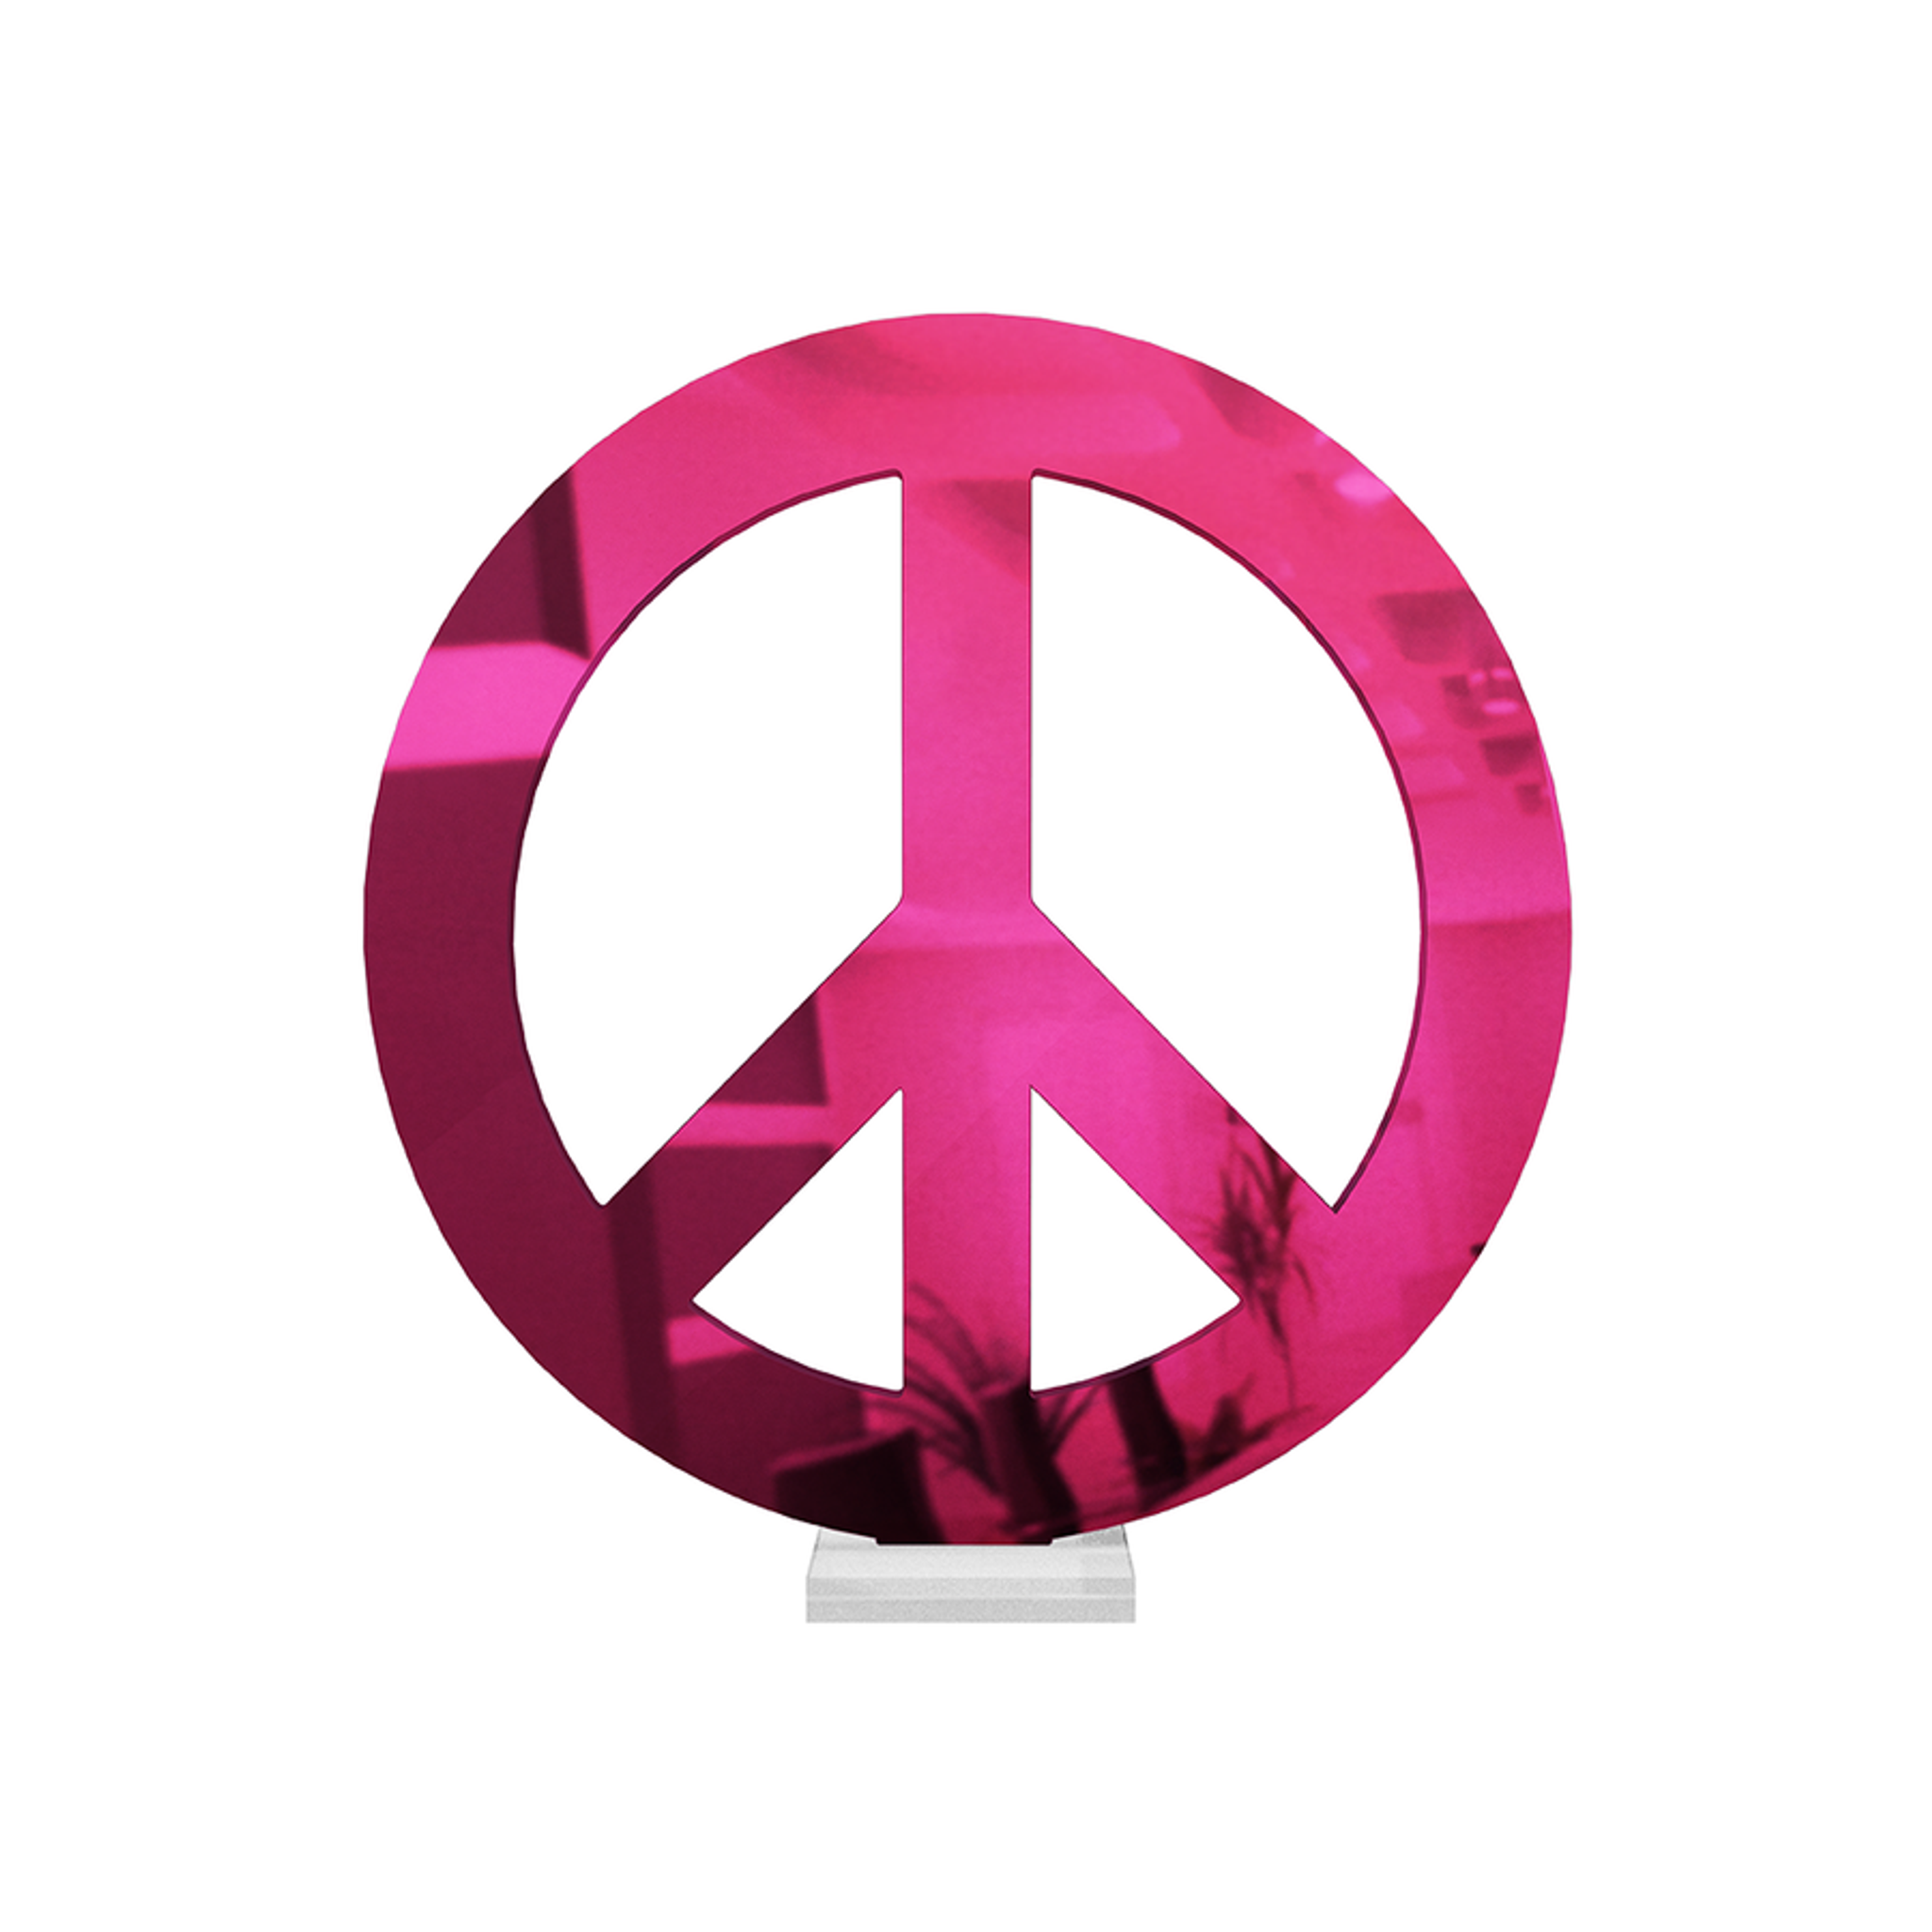 Mirrored Acrylic Peace Sign Tabletop Art